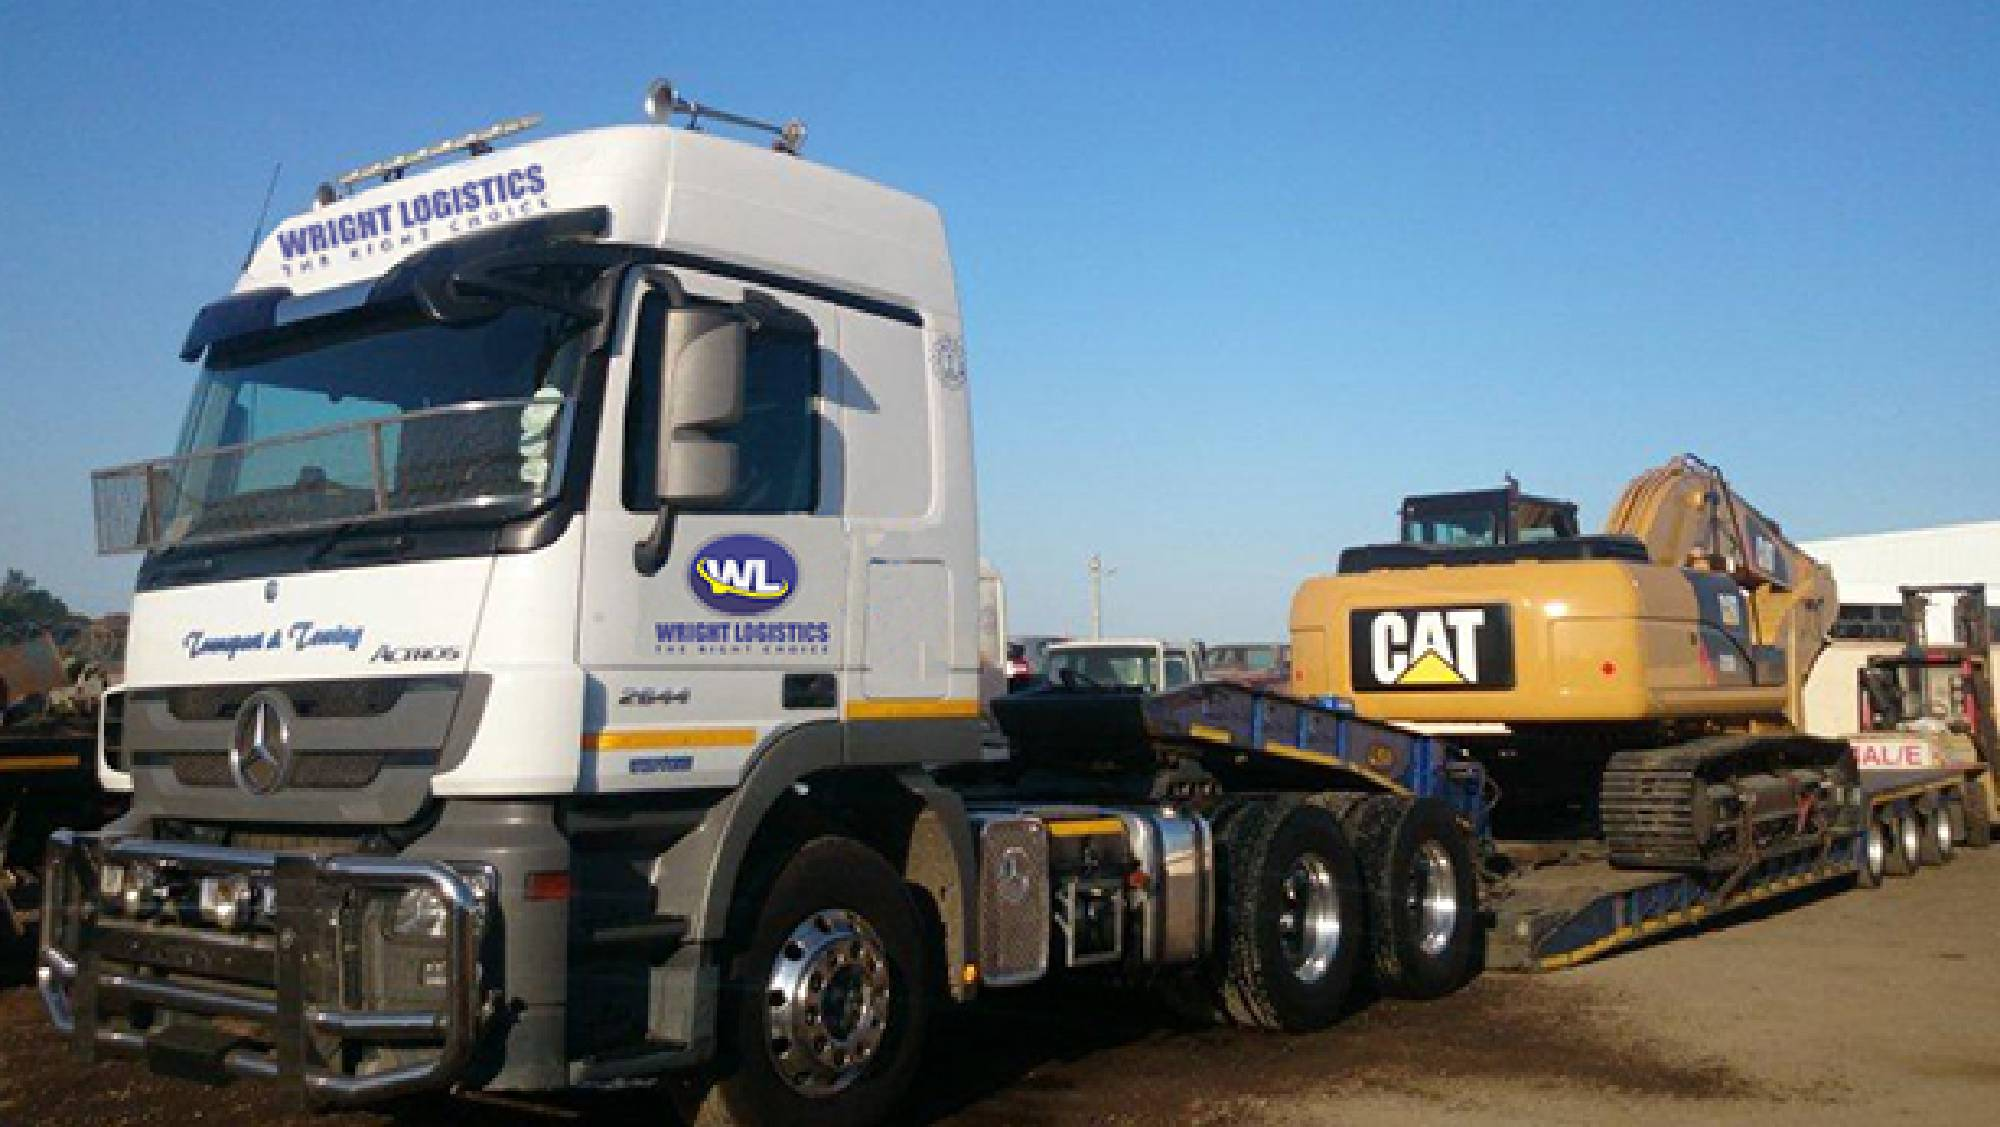 WRIGHT LOGISTICS - Earth Moving Equipment Hire